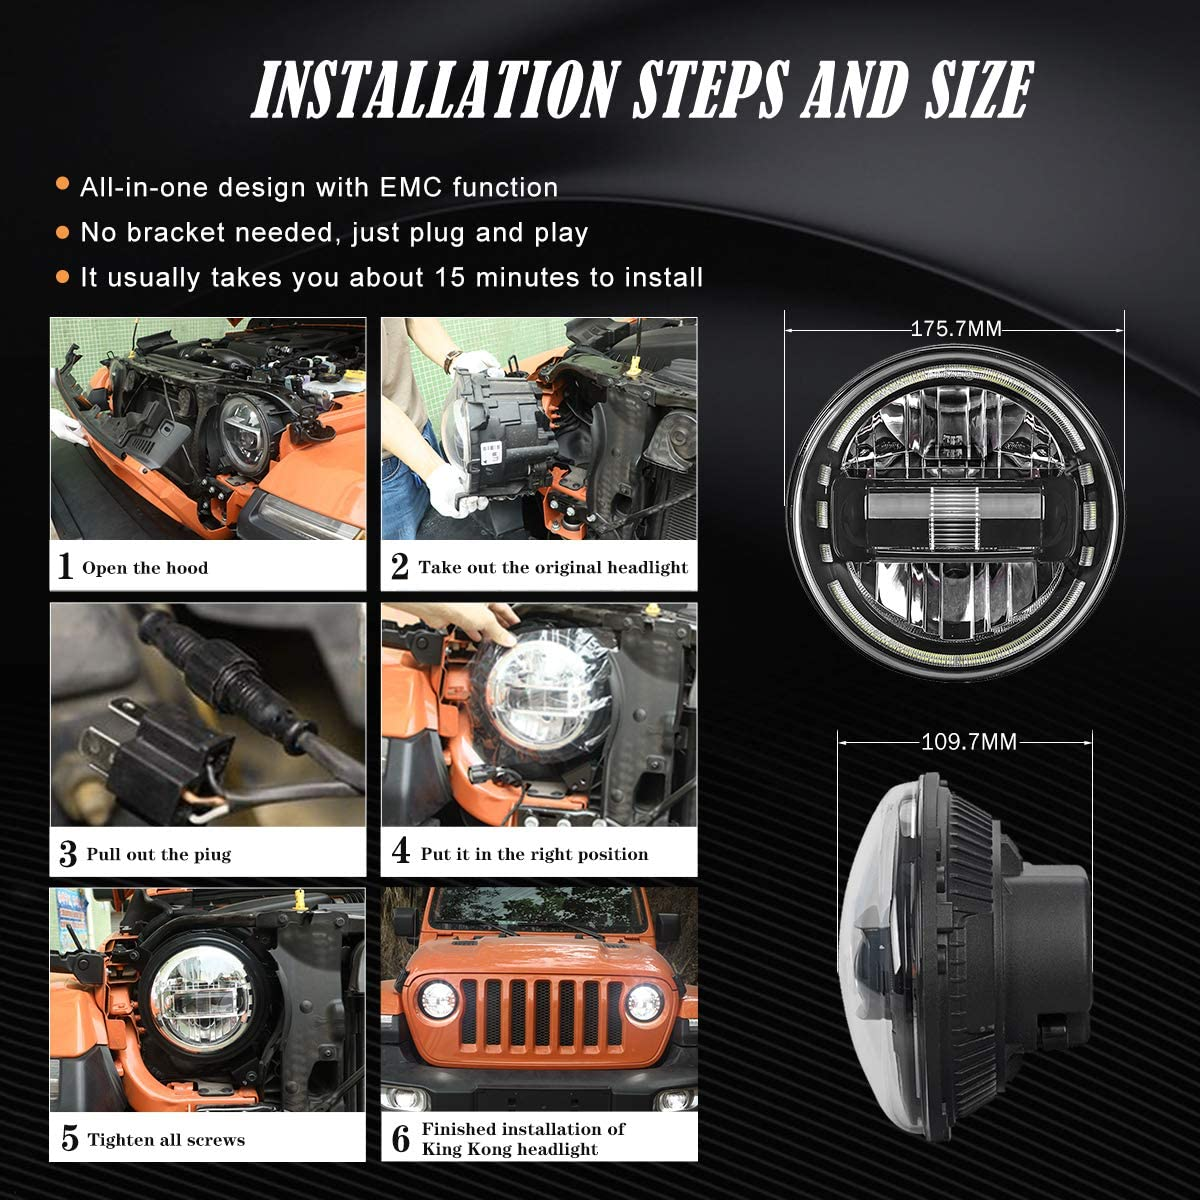 7 Inch Round LED Headlights DOT Compliant for Jeep Headlight with High Beam Low Beam DRL Compatible for Jeep Wrangler JK TJ LJ CJ 1997-2018 Hummer H1 H2 Headlamps Silver